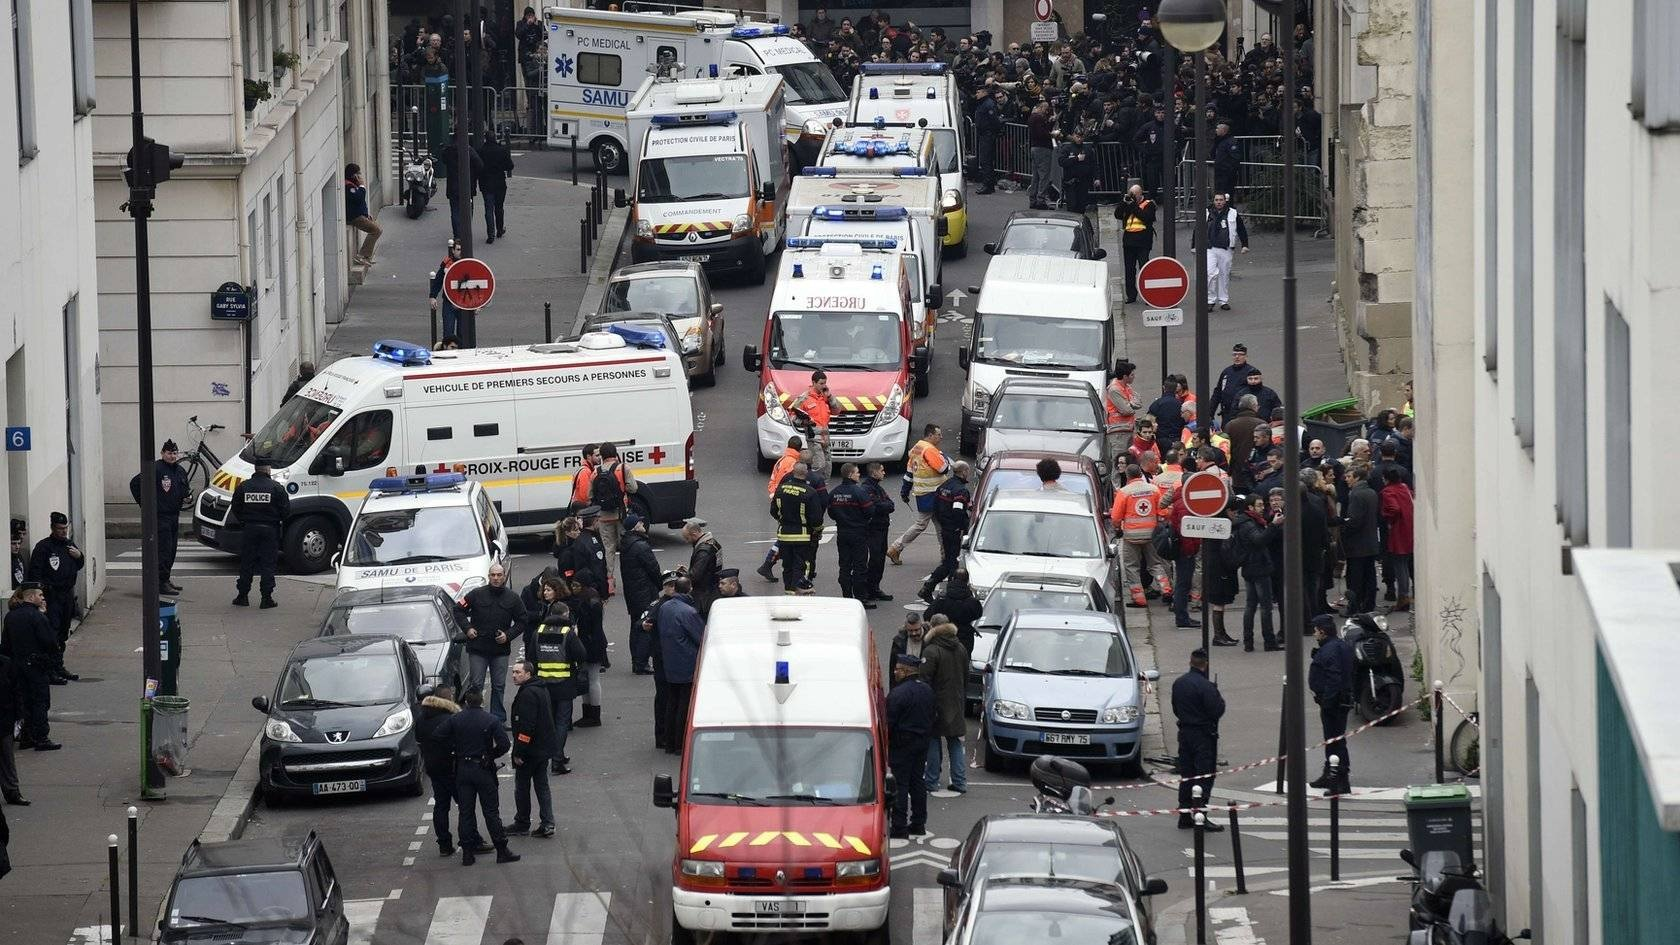 Islamic attack by three masked gunmen at the offices of the French satirical magazine Charlie Hebdo in Paris kills 12 people and injures 10.